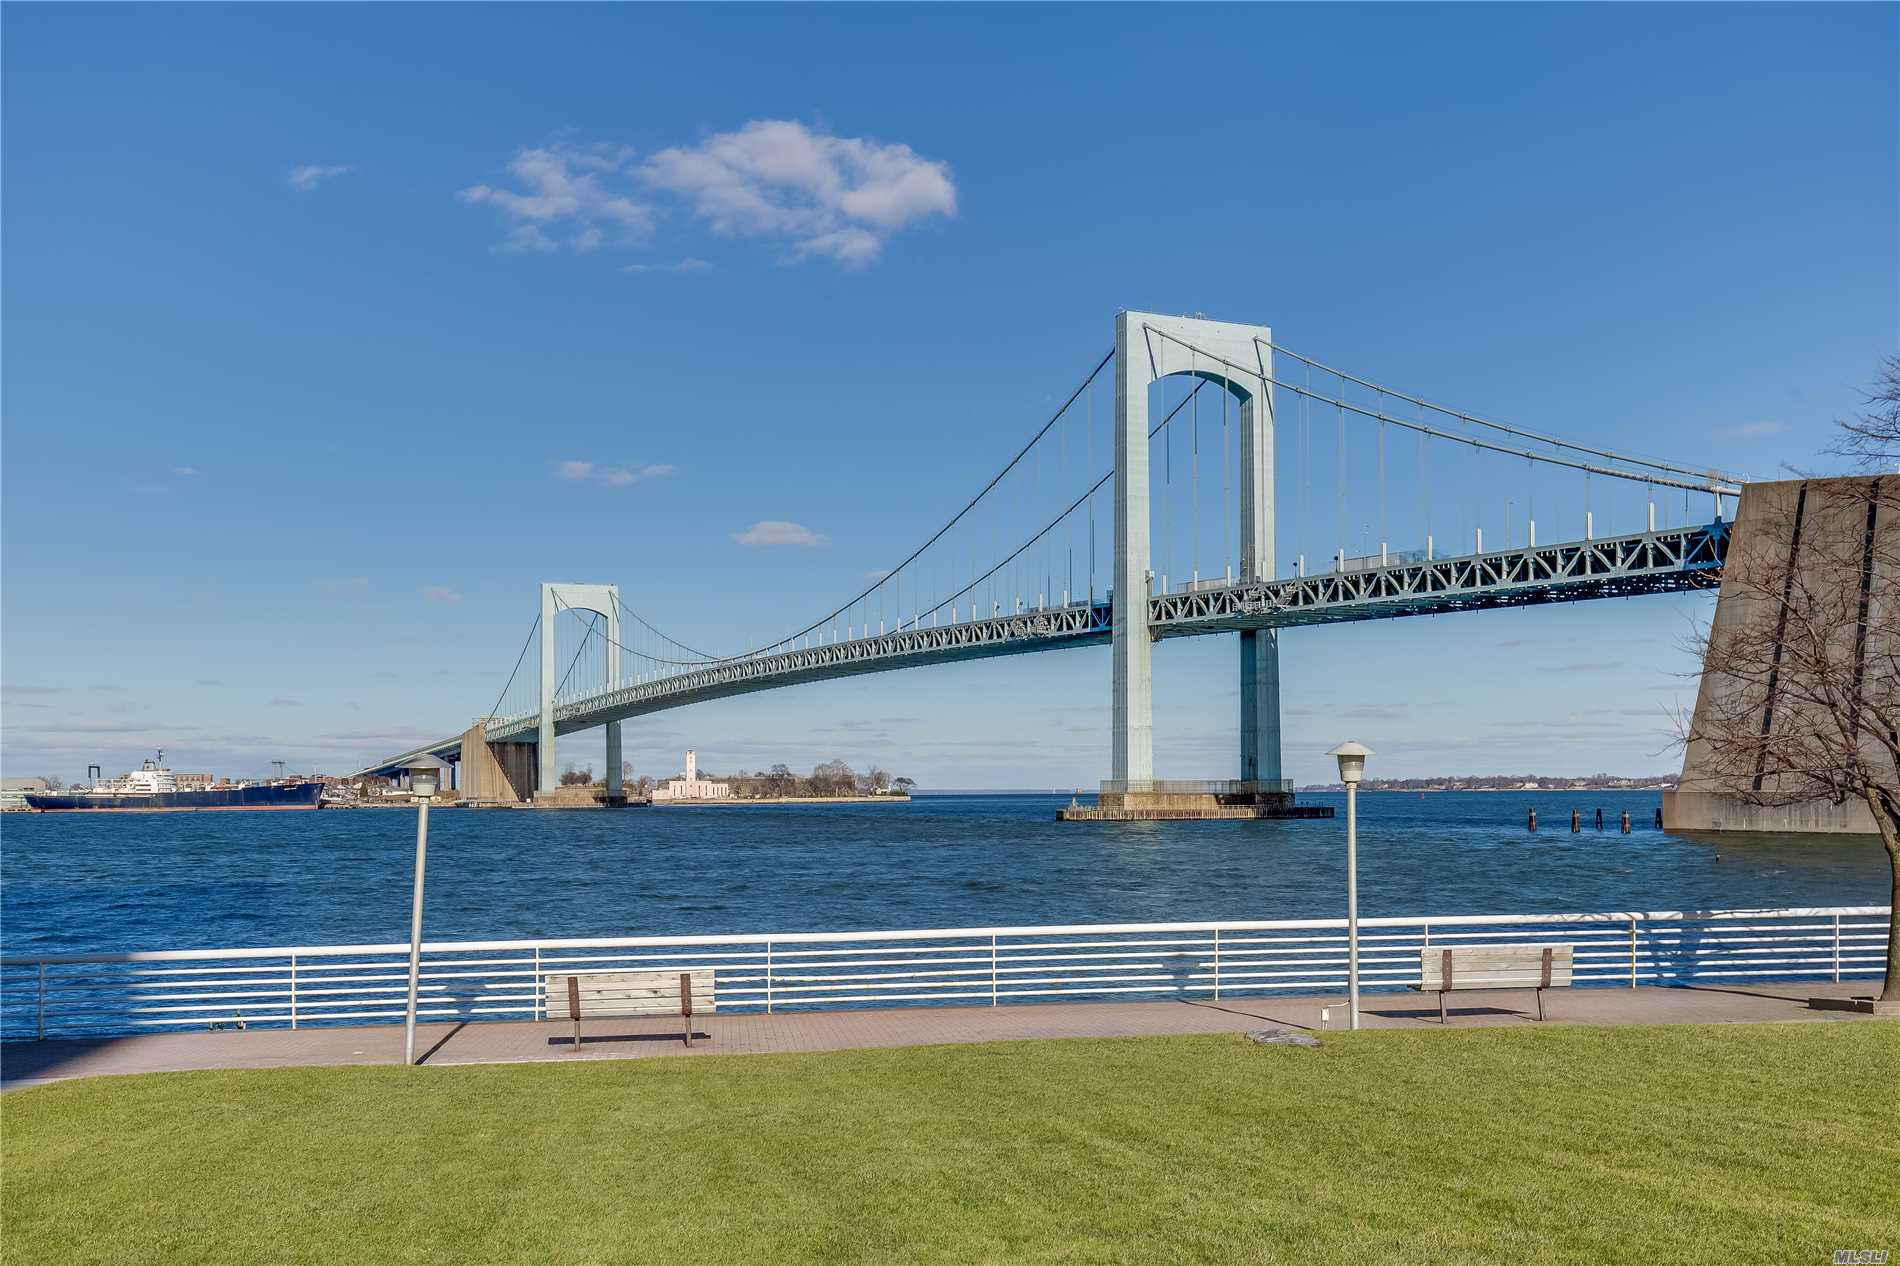 Enjoy Your Own Piece Of Paradise Where Luxury, Comfort & Convenience Meet! Wake Up Every Day To The Unobstructed Waterviews Of Manhattan Skyline, Whitestone Bridge/East River From Every Room Of This Gorgeous Spacious Apt, Circular Foyer, Private Balcony, Many Updates, Closets Galore/Walk-In Closets, Double Sink In Master Bath, 24 Hrs Security Gate, Waterfront Promenade/Dock, Concierge, Valet Prkng, Verizon Fios, Live-In-Super, Package Rm, Can Easily Create 3rd Br/Office If Needed, Express Bus To Nyc At Corner.